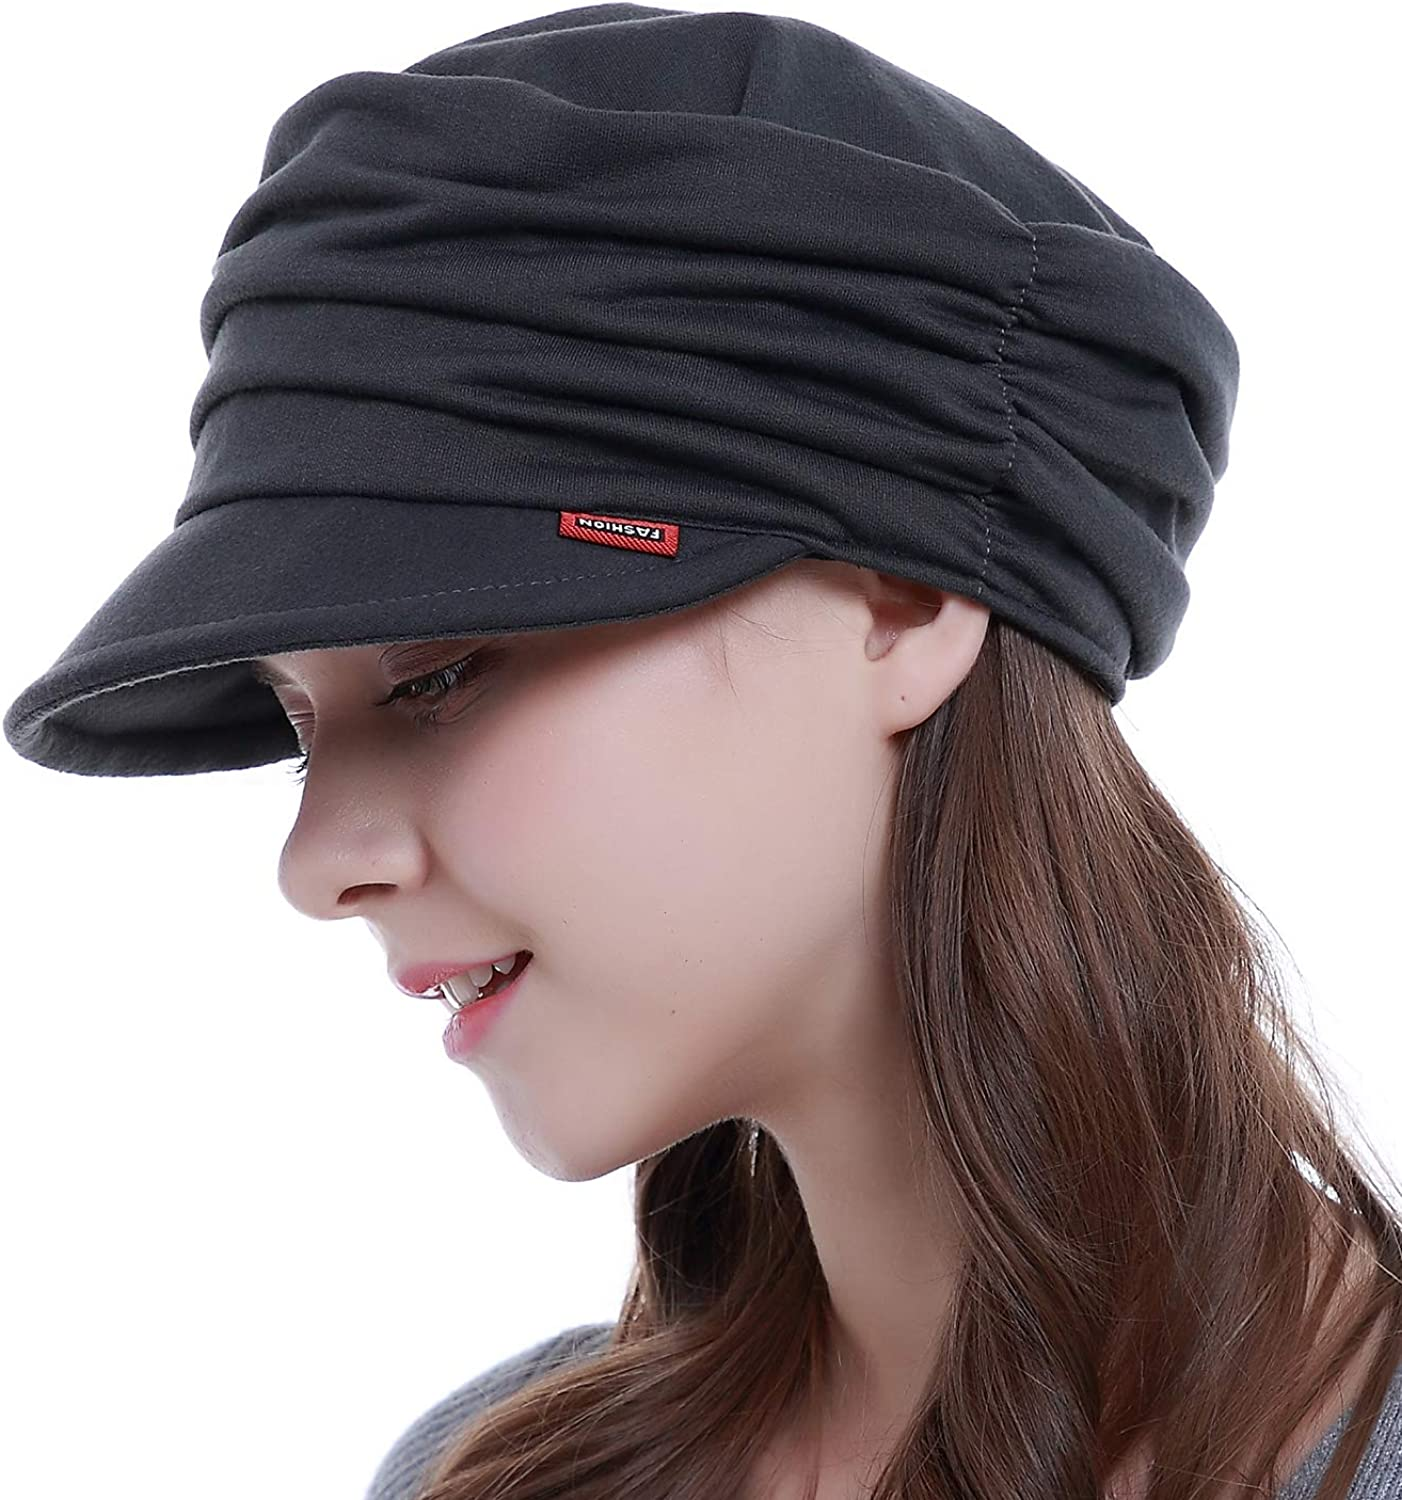 HatsCity Fashion Hat Cap with Brim Visor for Woman Ladies, Best for Daily Use